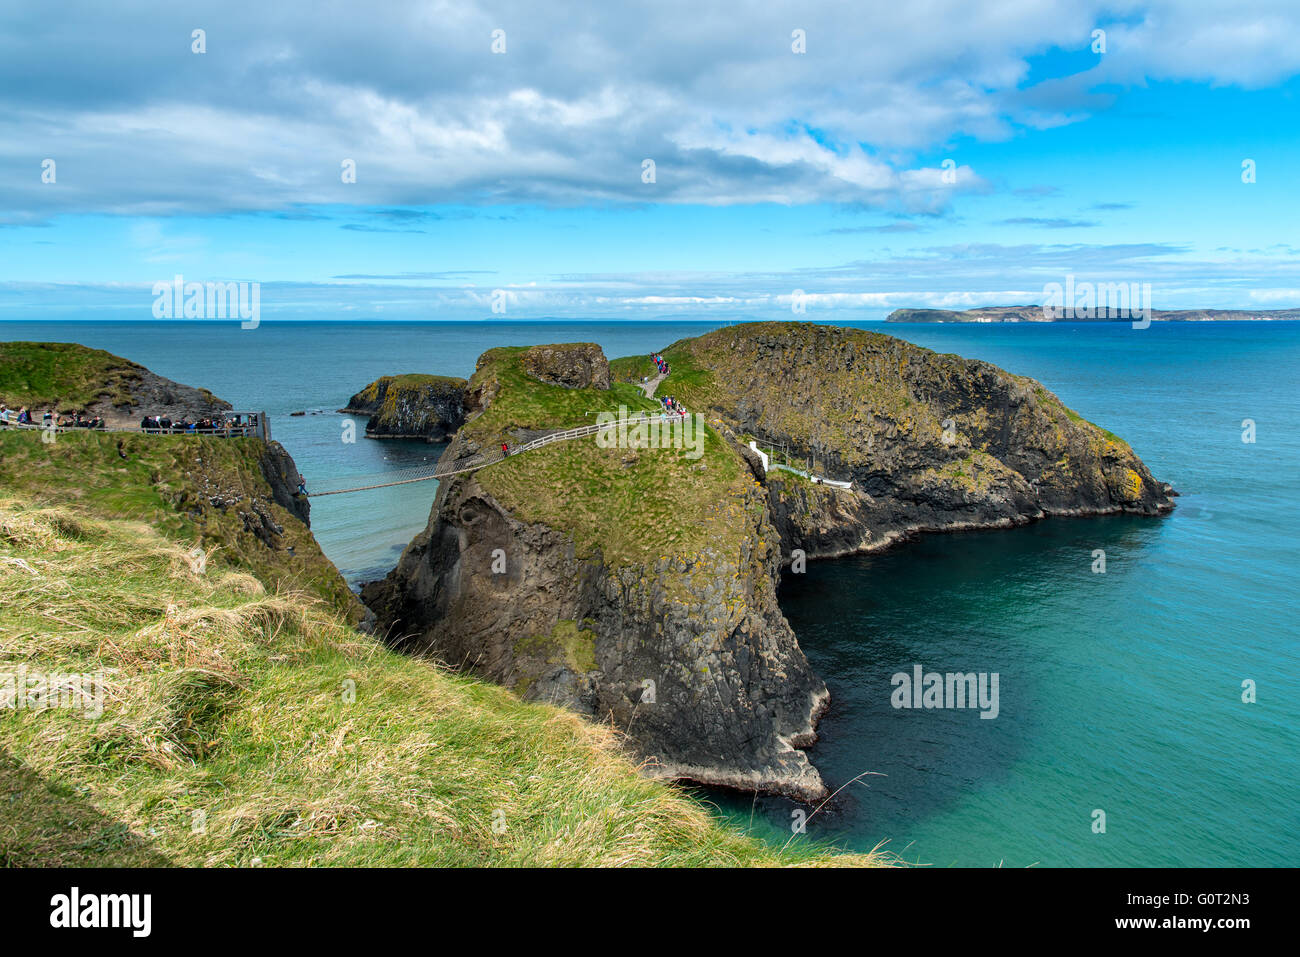 COUNTY ANTRIM, NORTHERN IRELAND - 5 APR 2016: Carrick-a-Rede, with Rathlin Island in the distance. - Stock Image